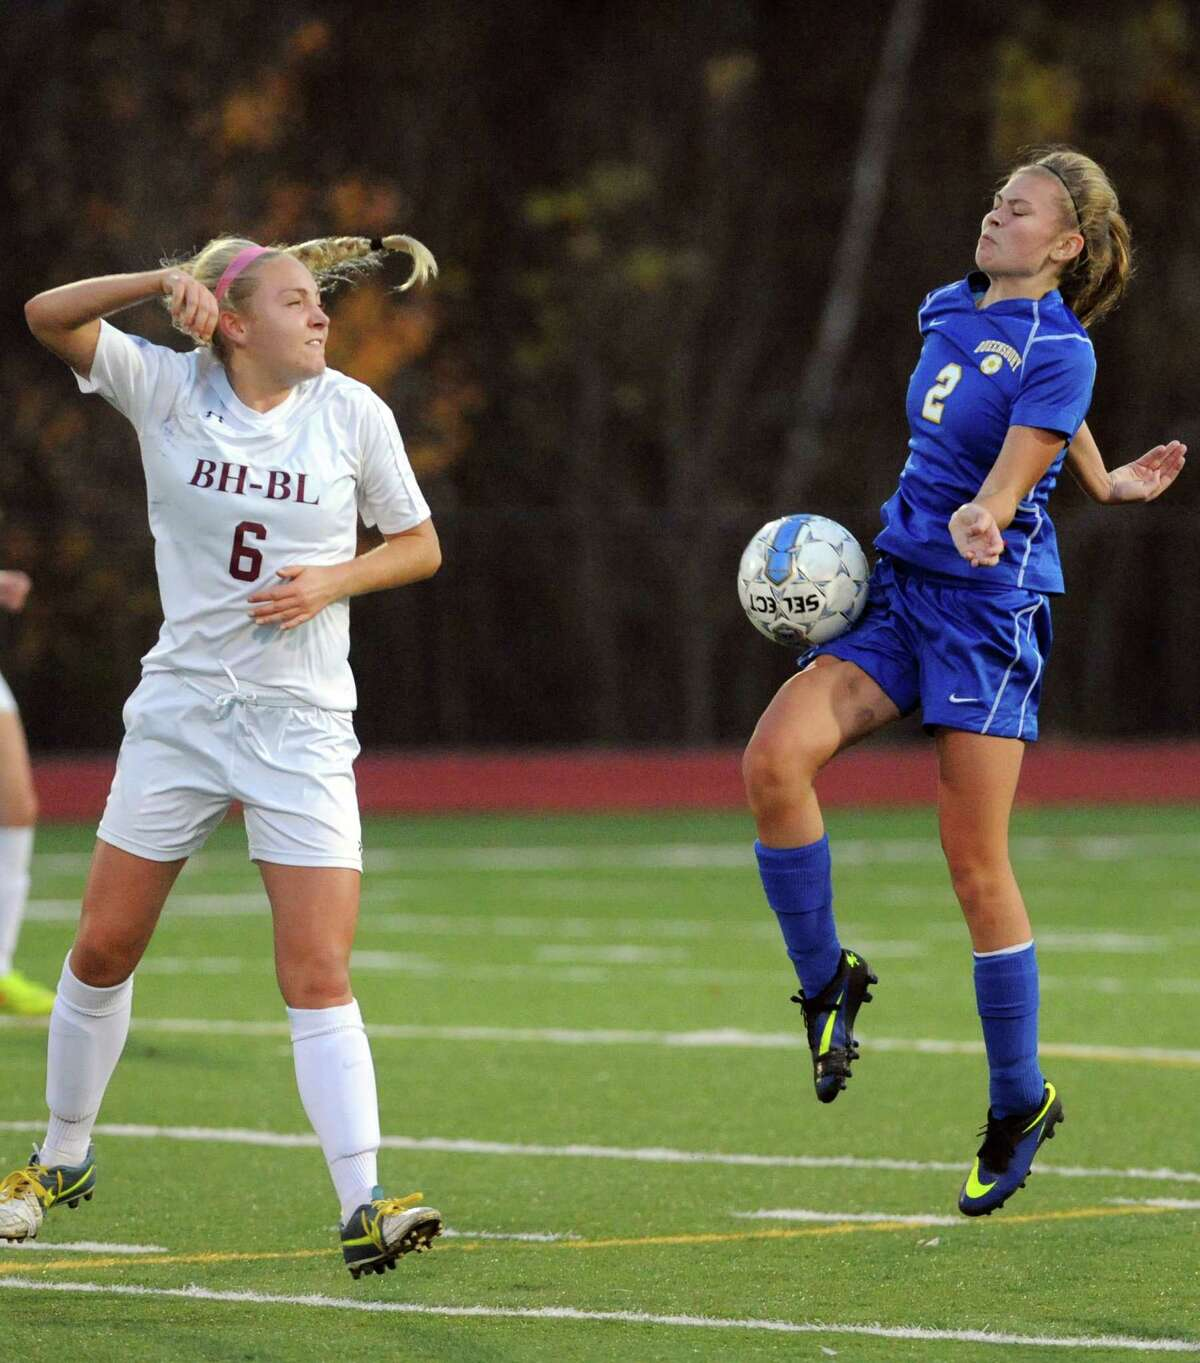 Burnt Hills-Ballston Lake's Casey Doherty and Queensbury's Sarah Logan battle for the ball during their Class A girls' soccer semifinals on Tuesday Oct. 28, 2014 in Stillwater, N.Y. (Michael P. Farrell/Times Union)